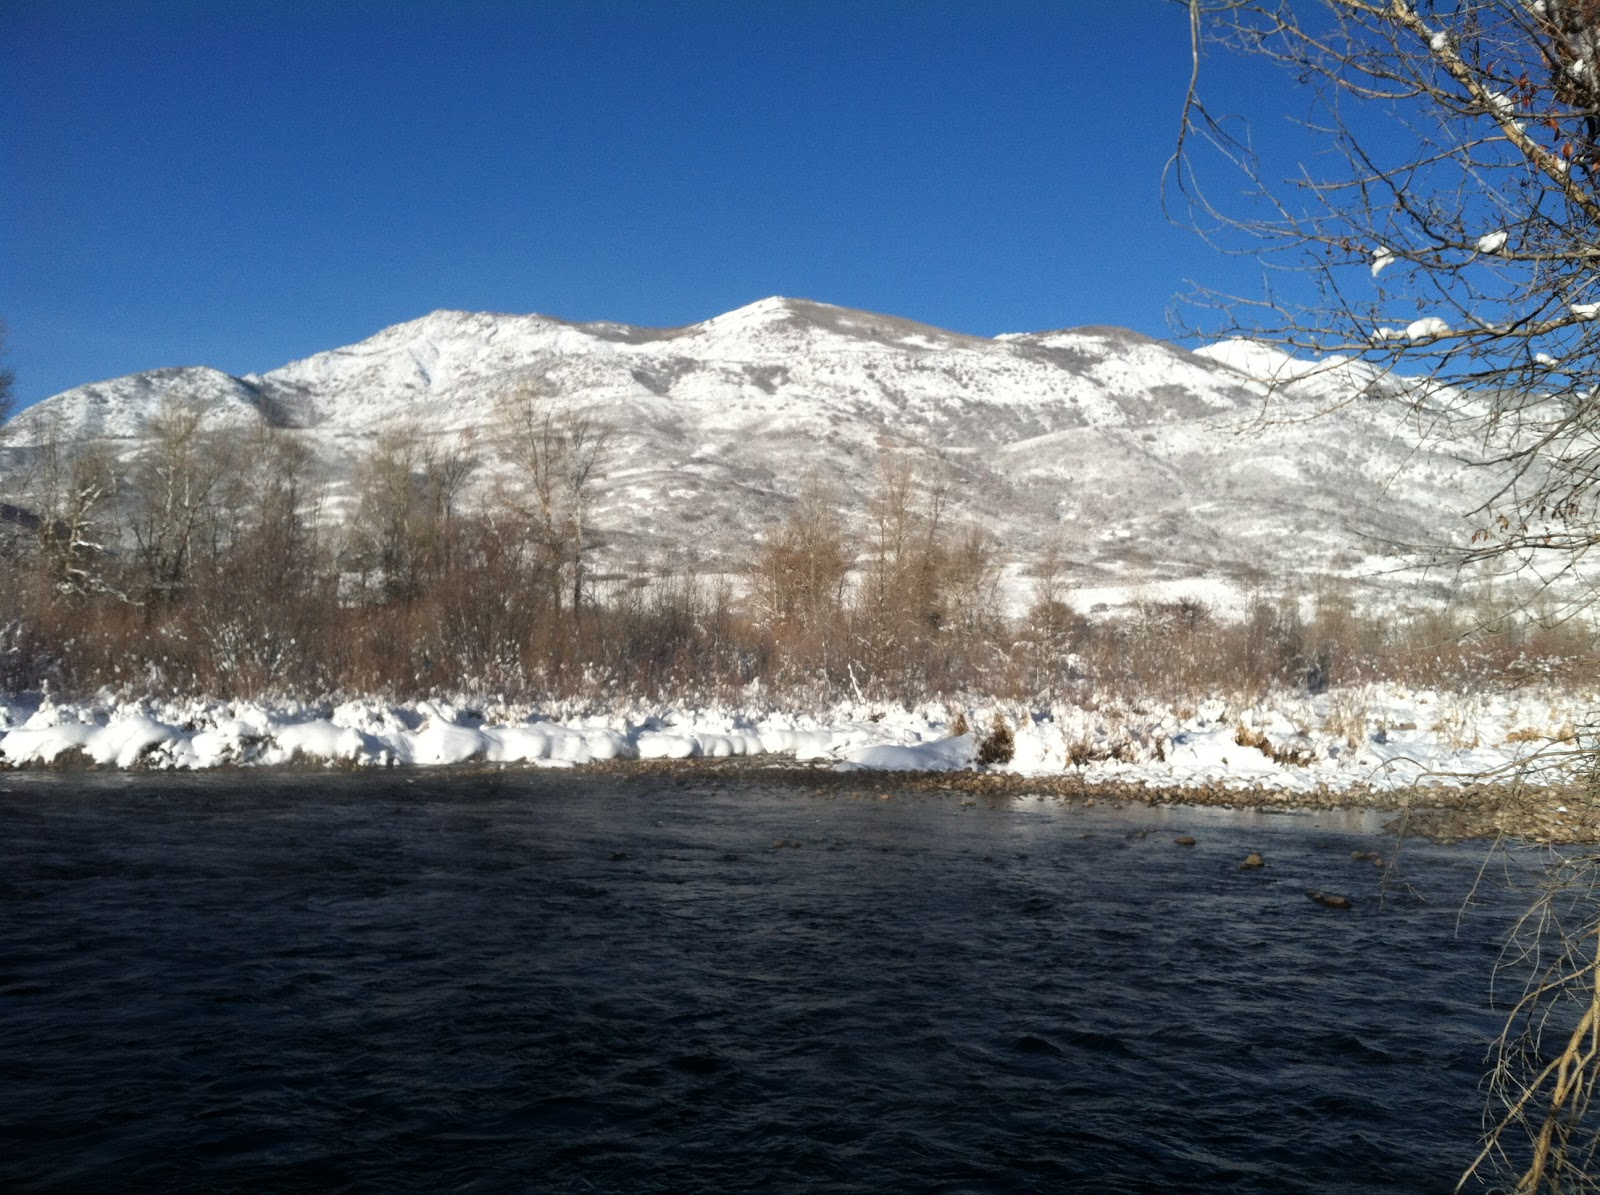 Provo river fly guy year round fishing blog november 13 for Provo river fishing report